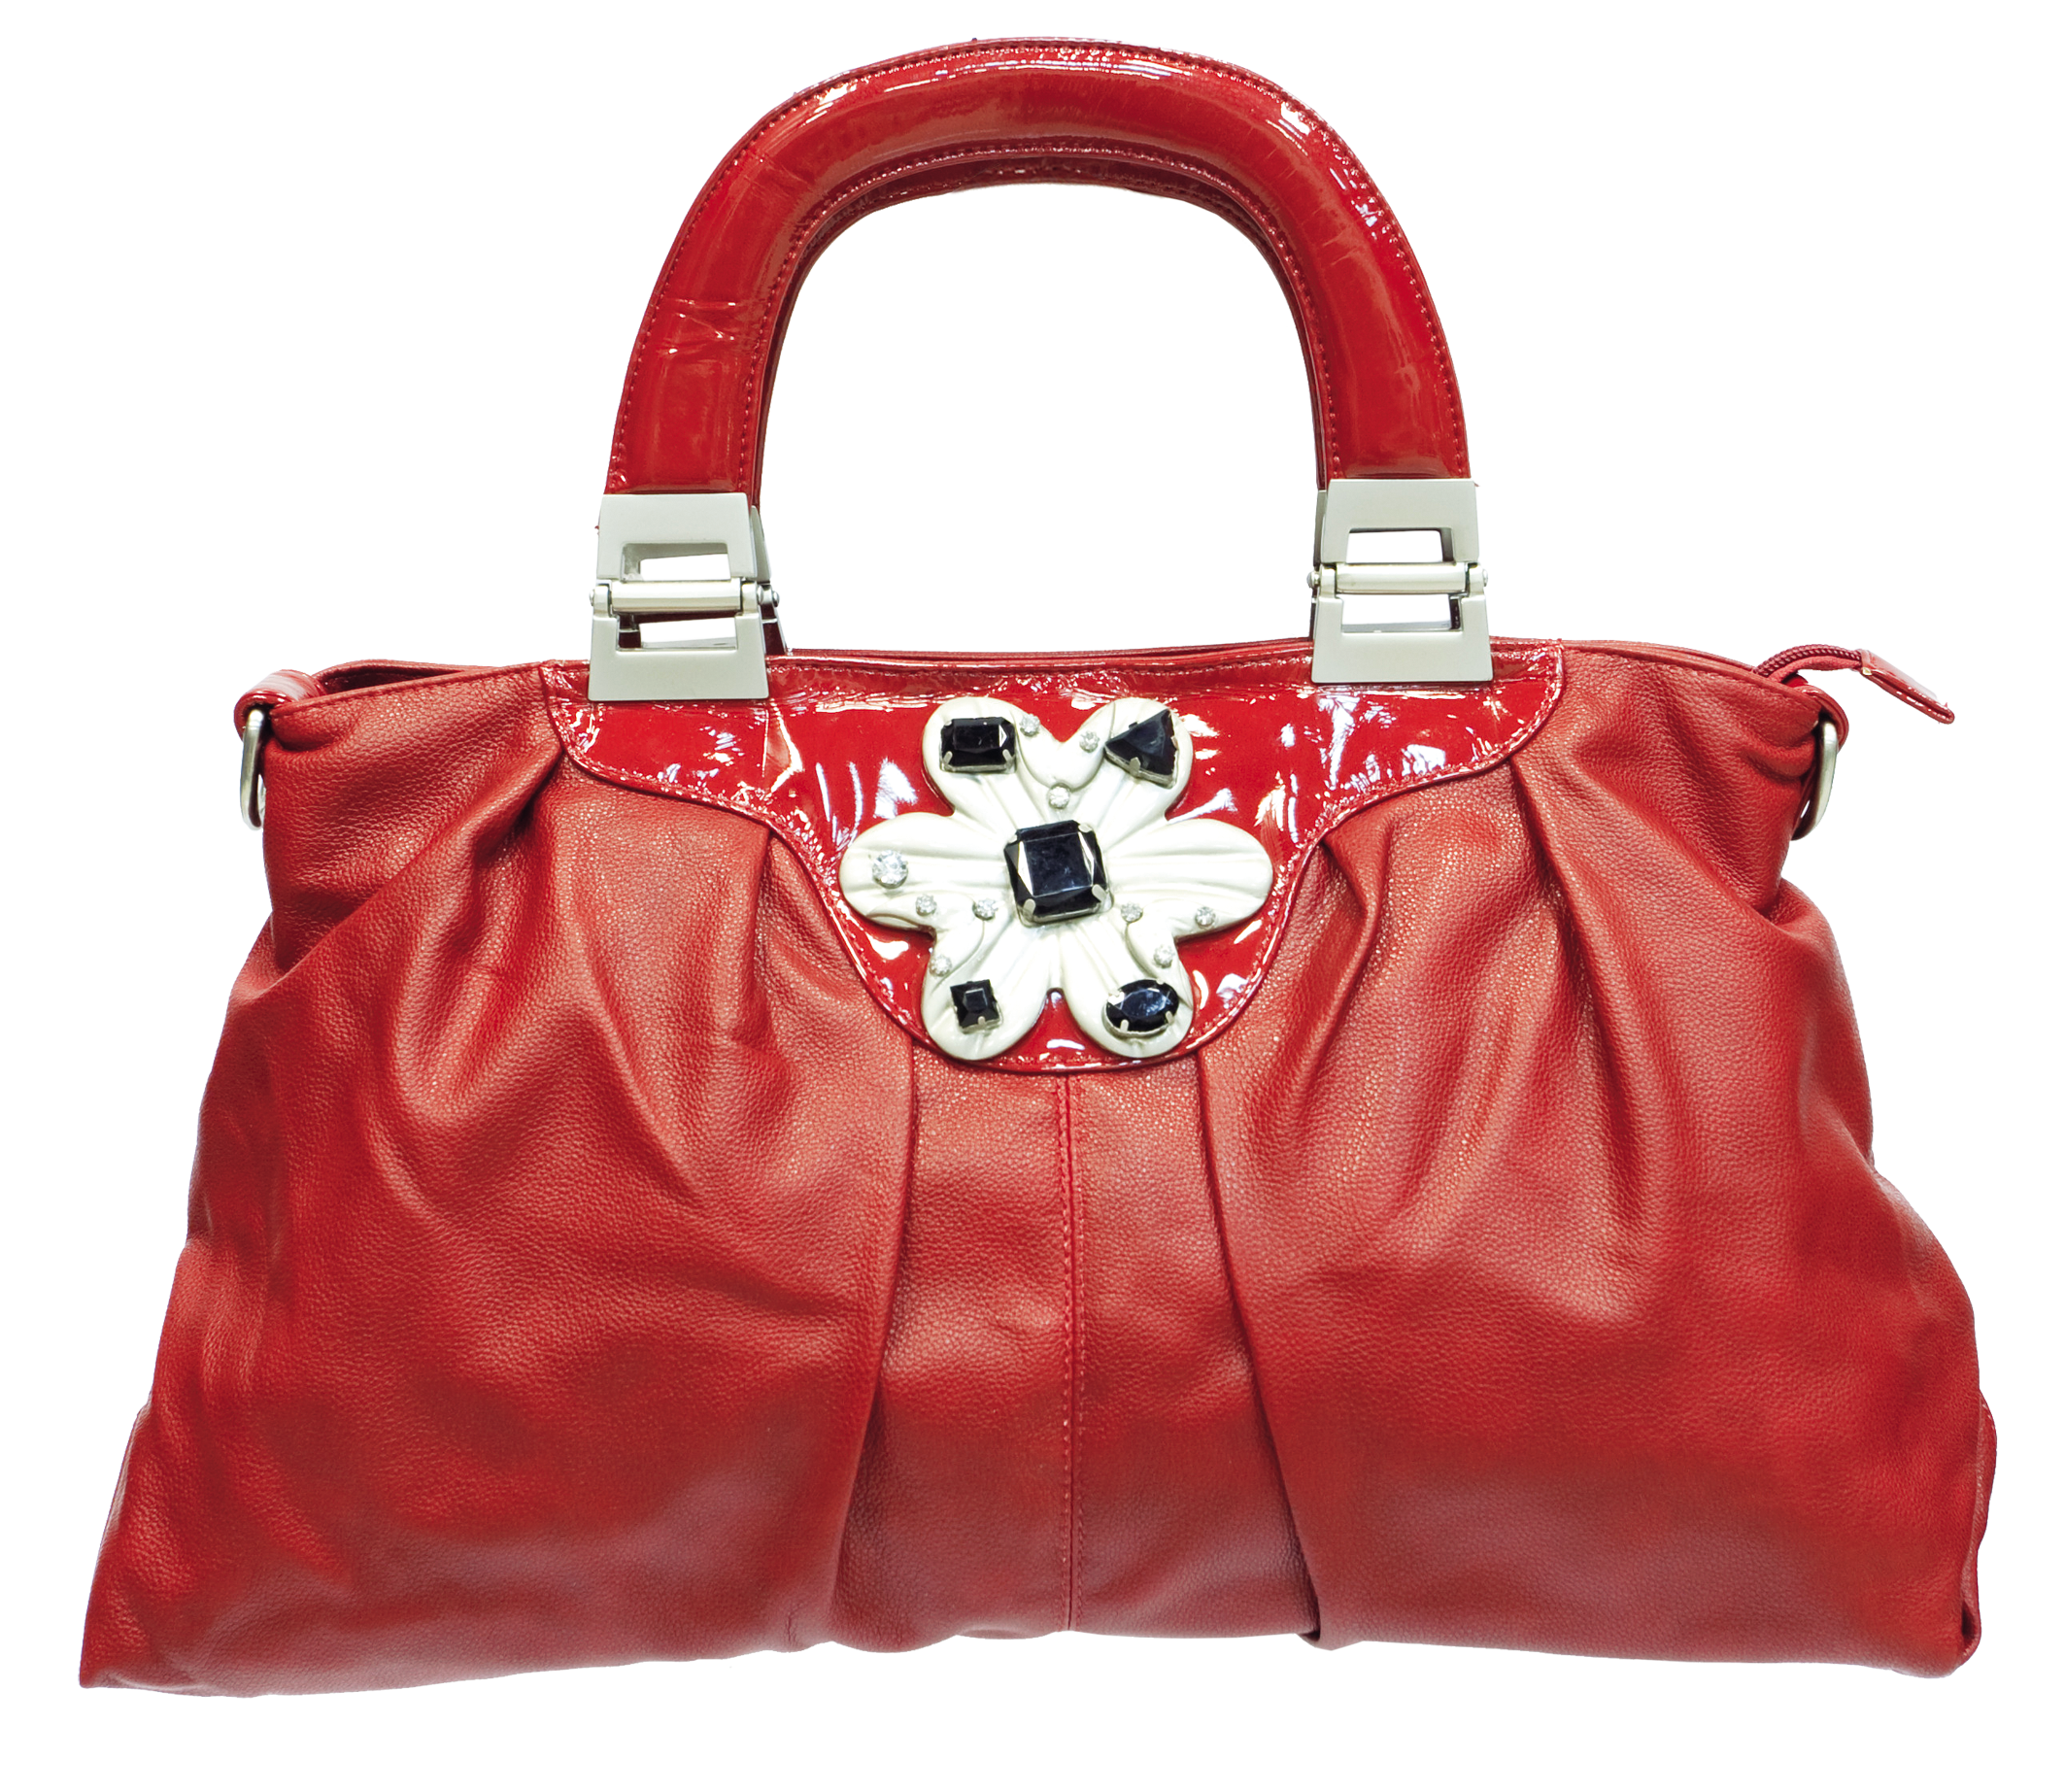 Women bag PNG image - Women Bag PNG